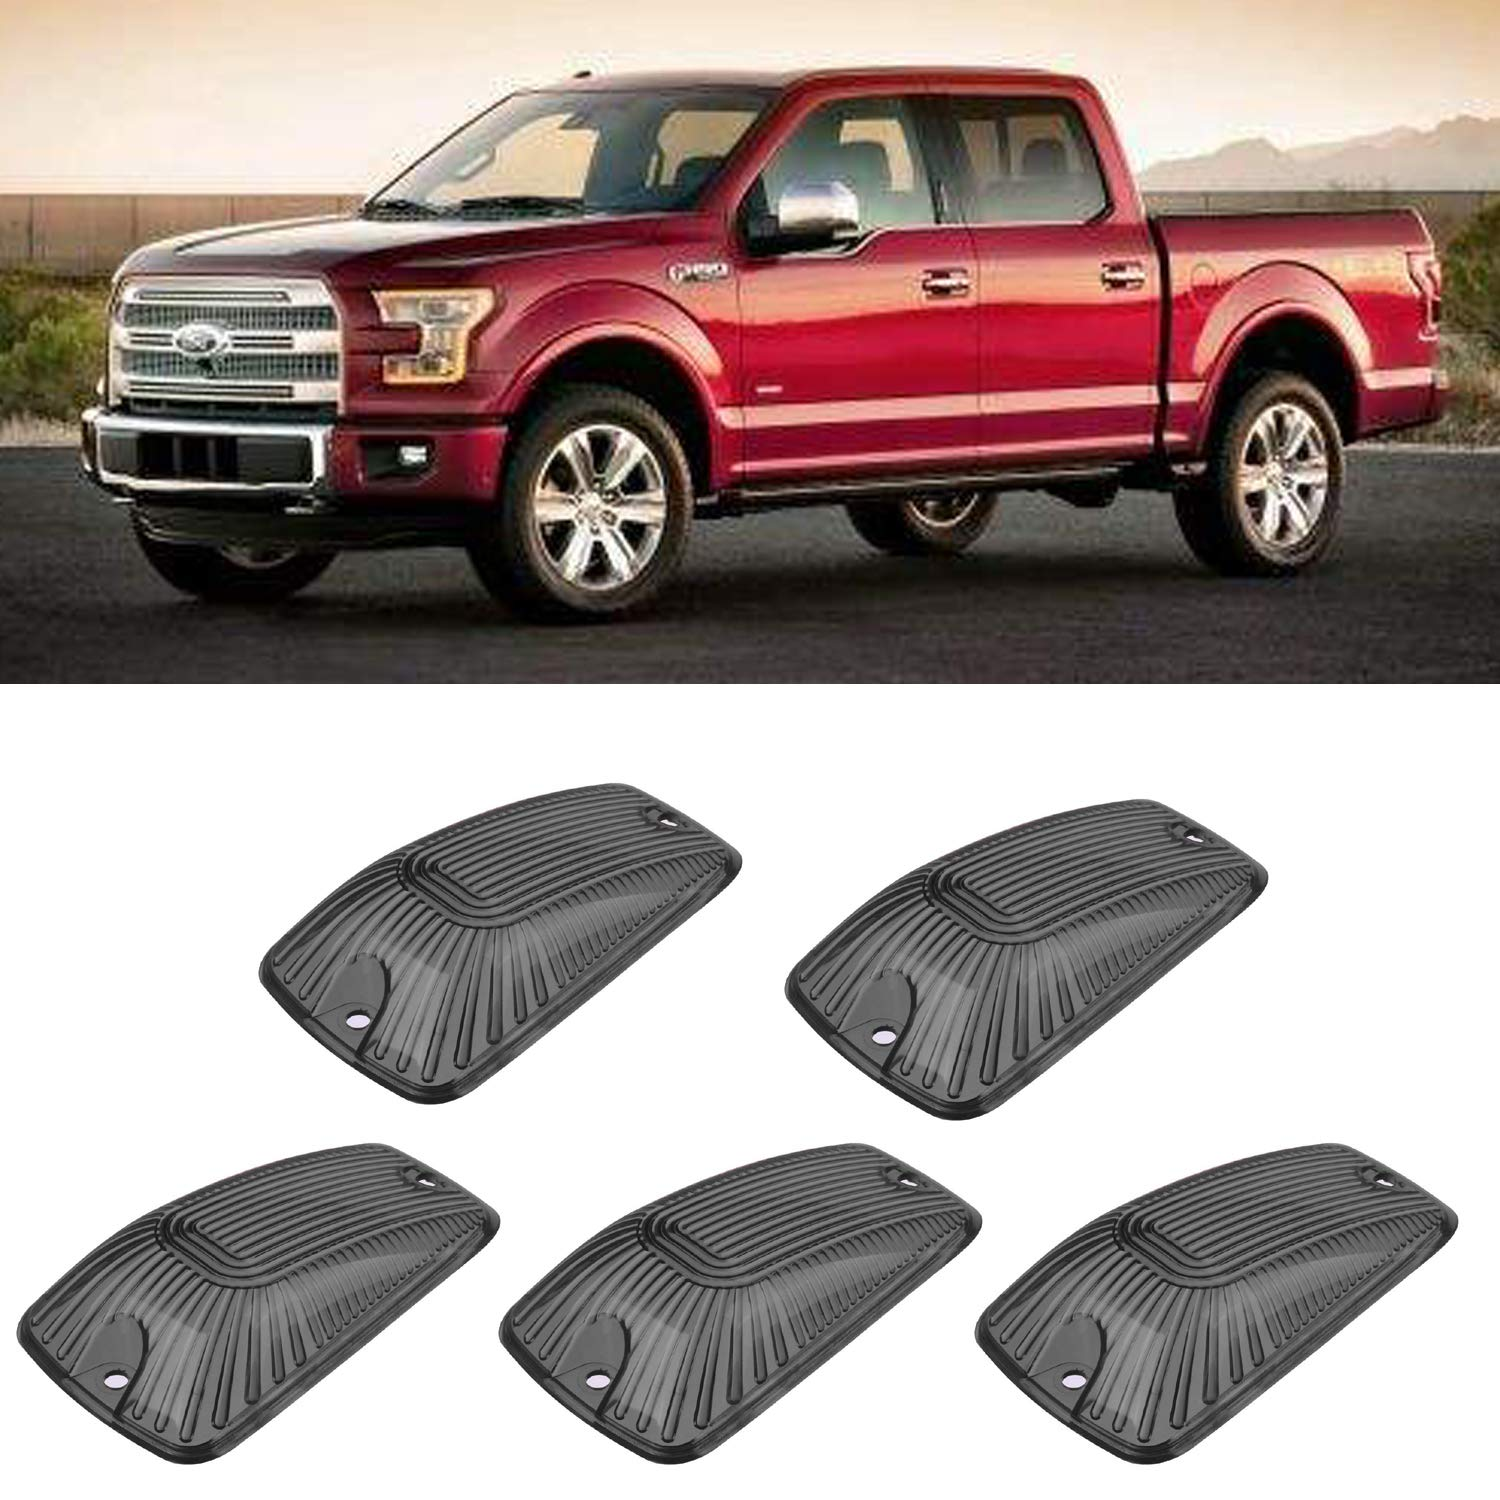 5 Pieces Top Roof Cab Marker Lights Lens Cover Replacement for 1988-2000 GMC C//K 1500 2500 3500HD